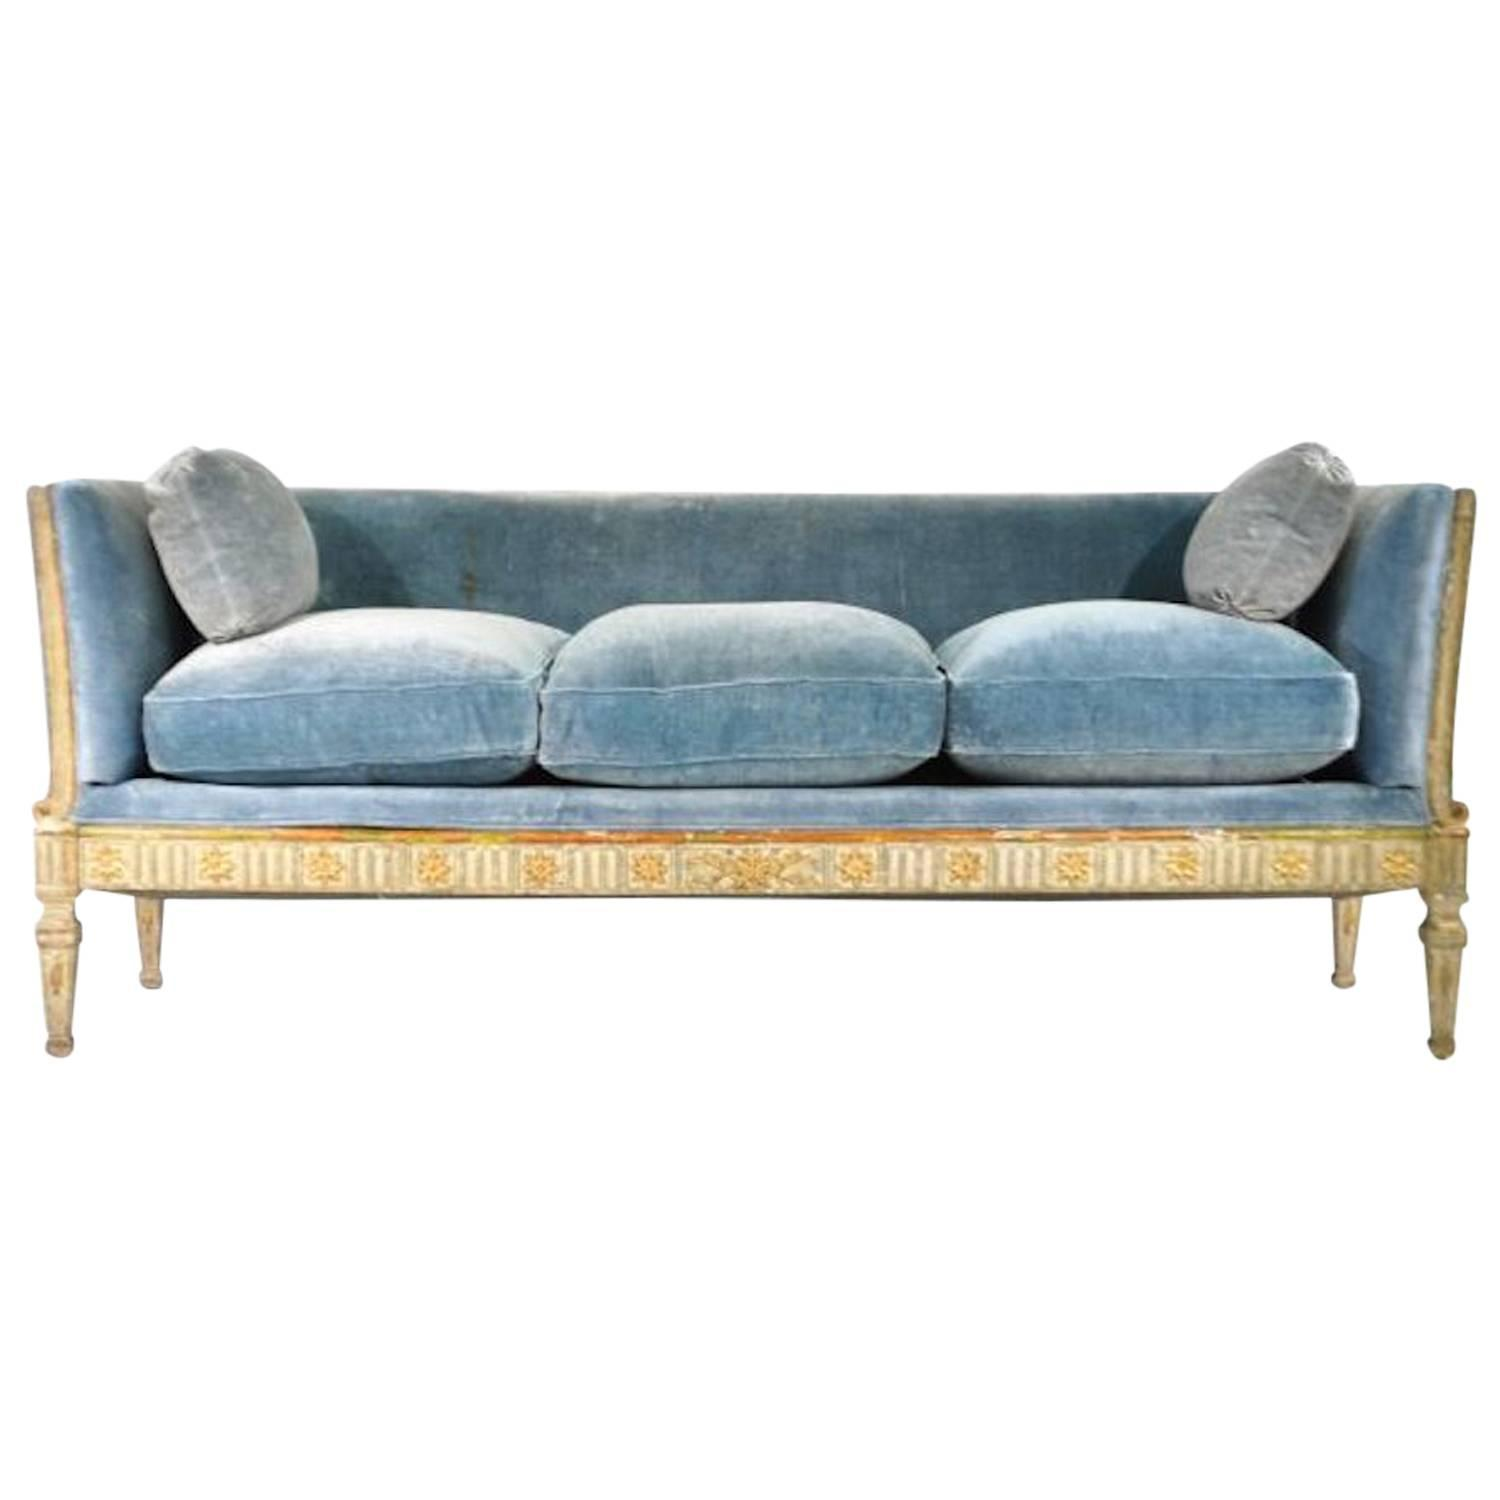 early 19th century swedish gustavian sofa at 1stdibs